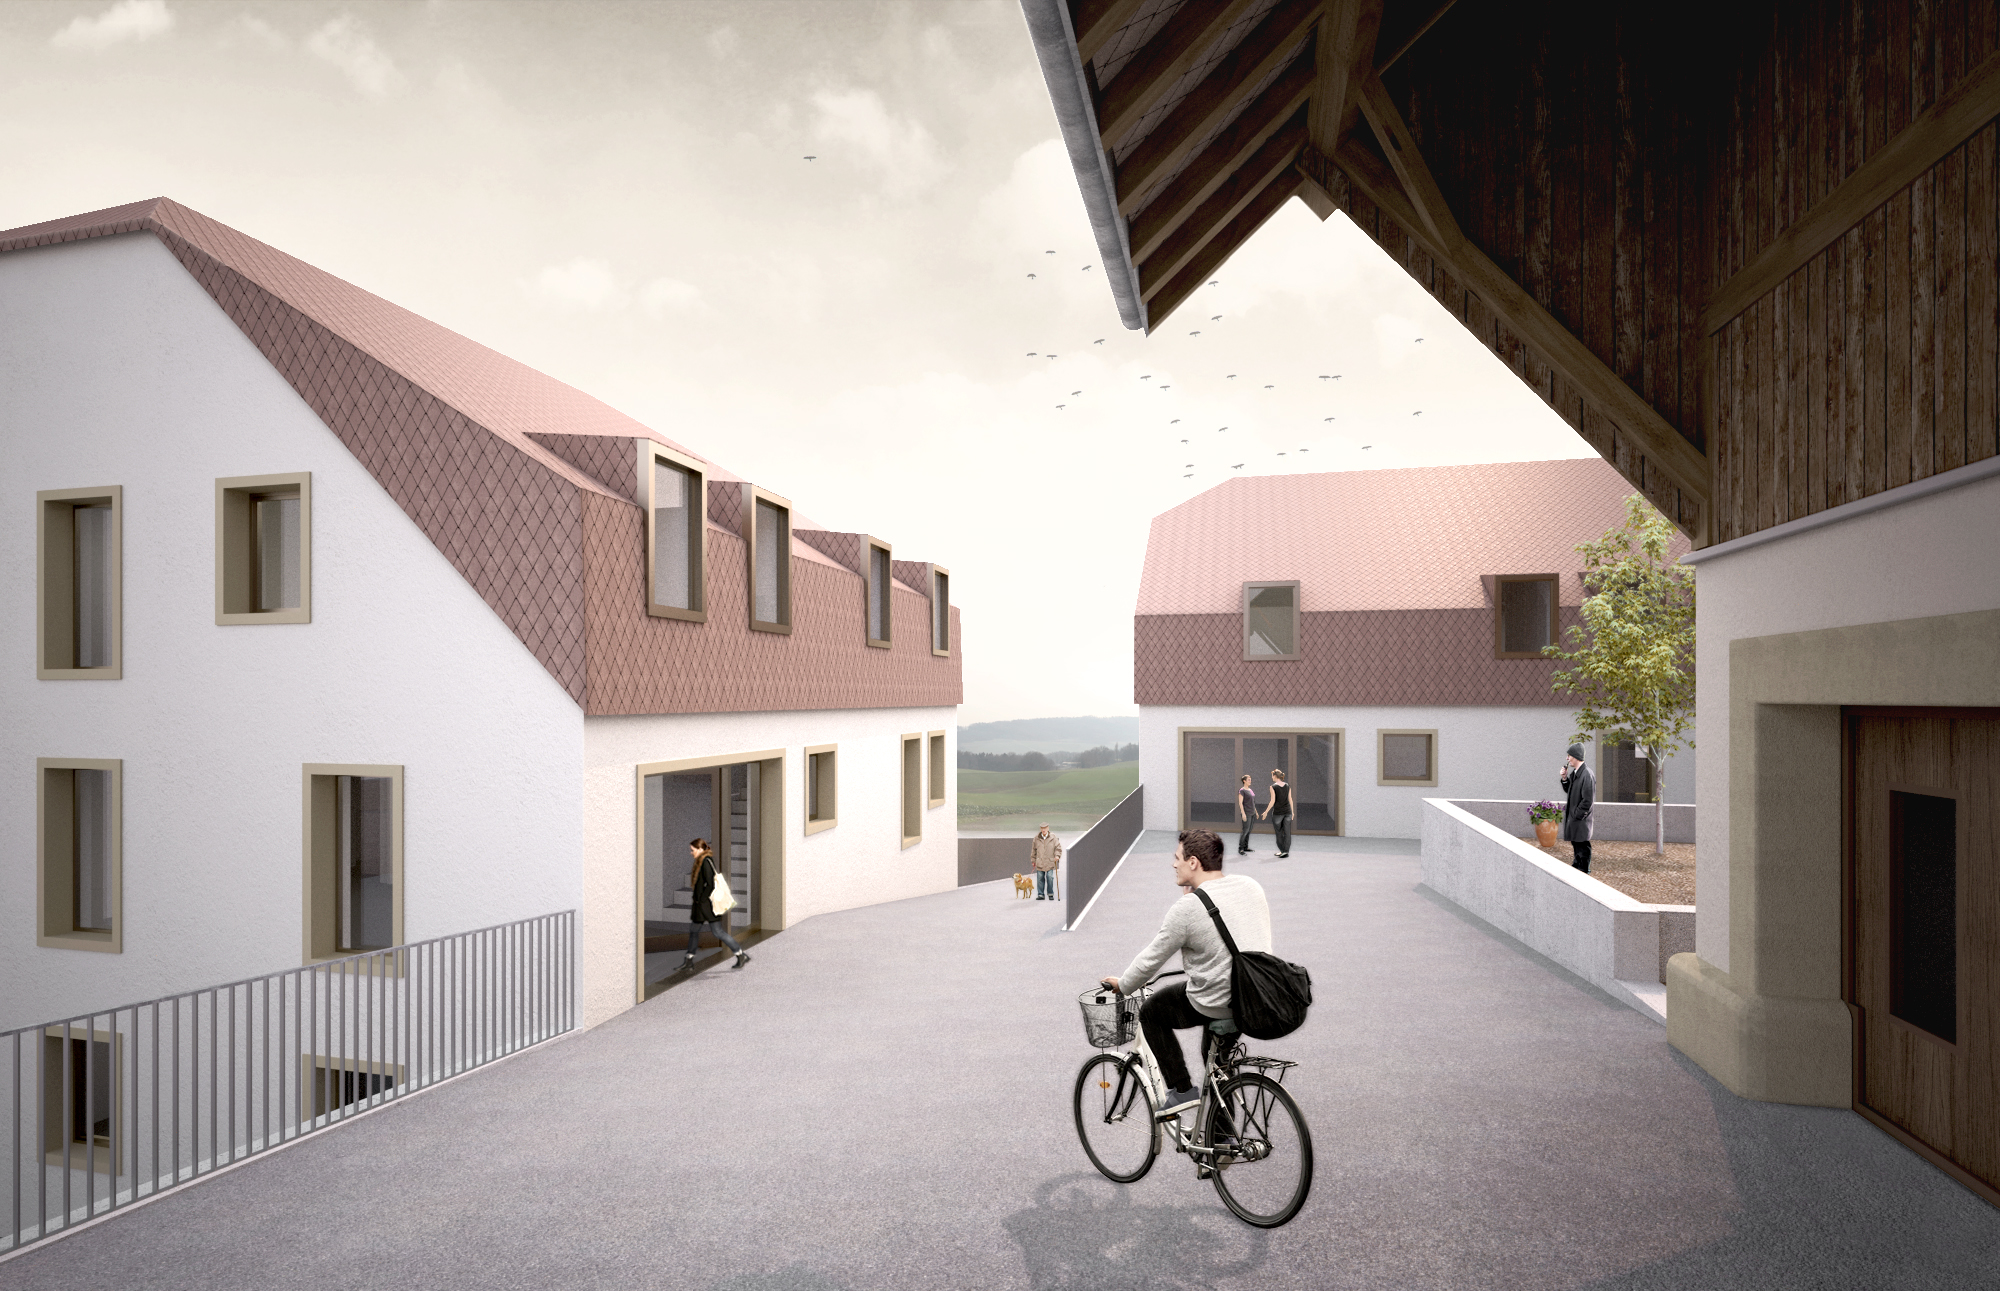 Atelier d architecture jacques ayer fribourg granges paccot